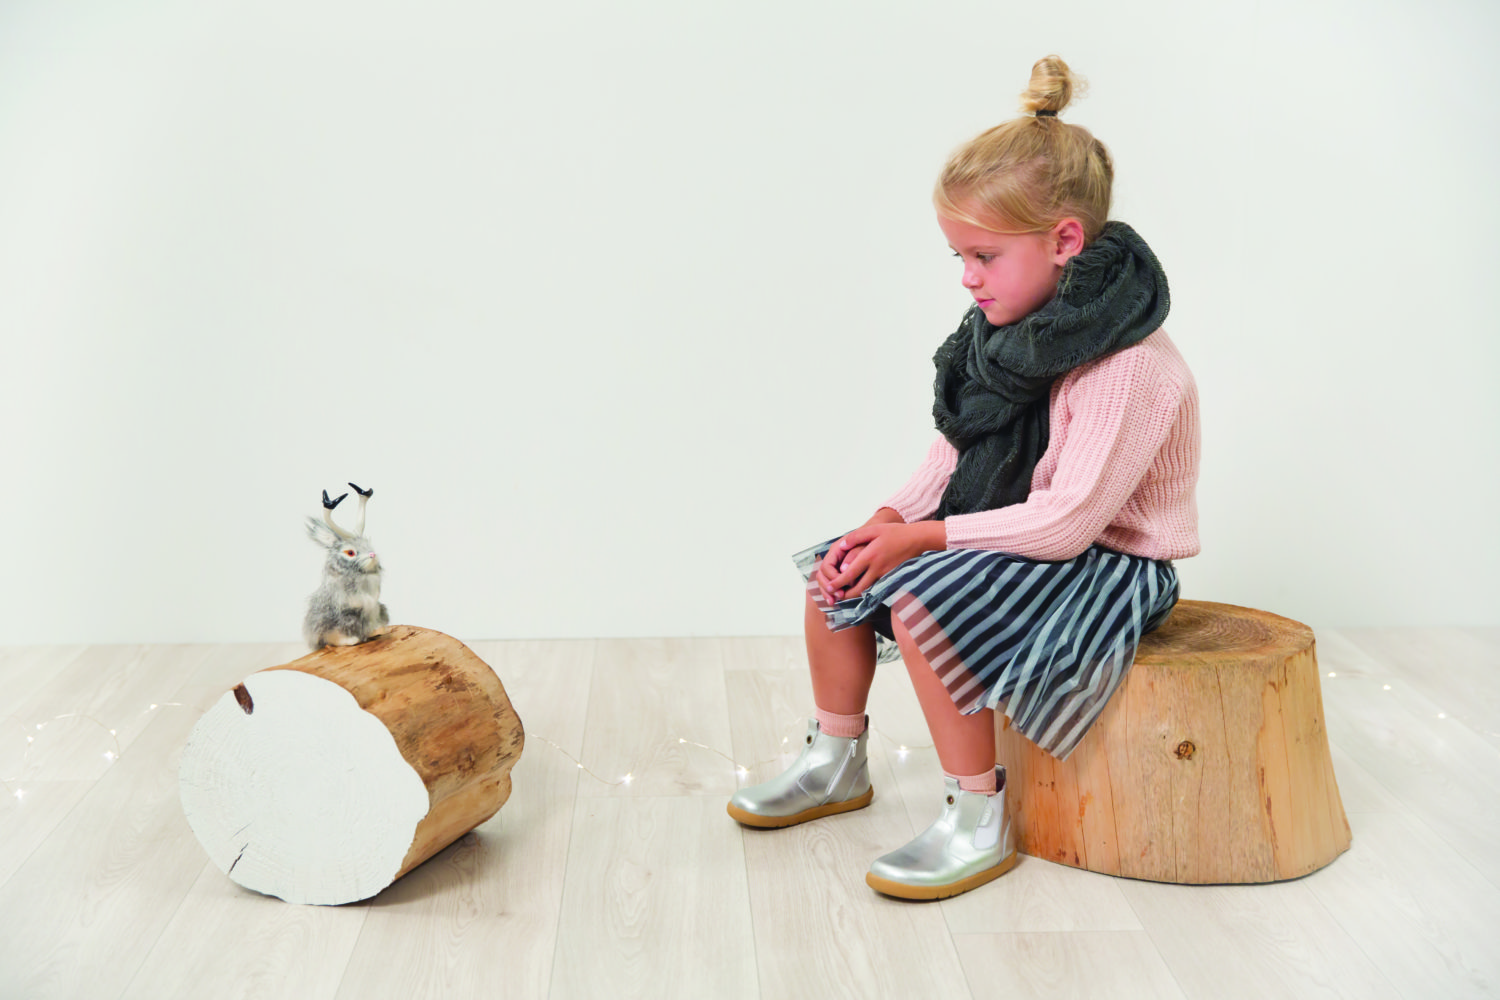 Little girl sitting on a log looking fed up.